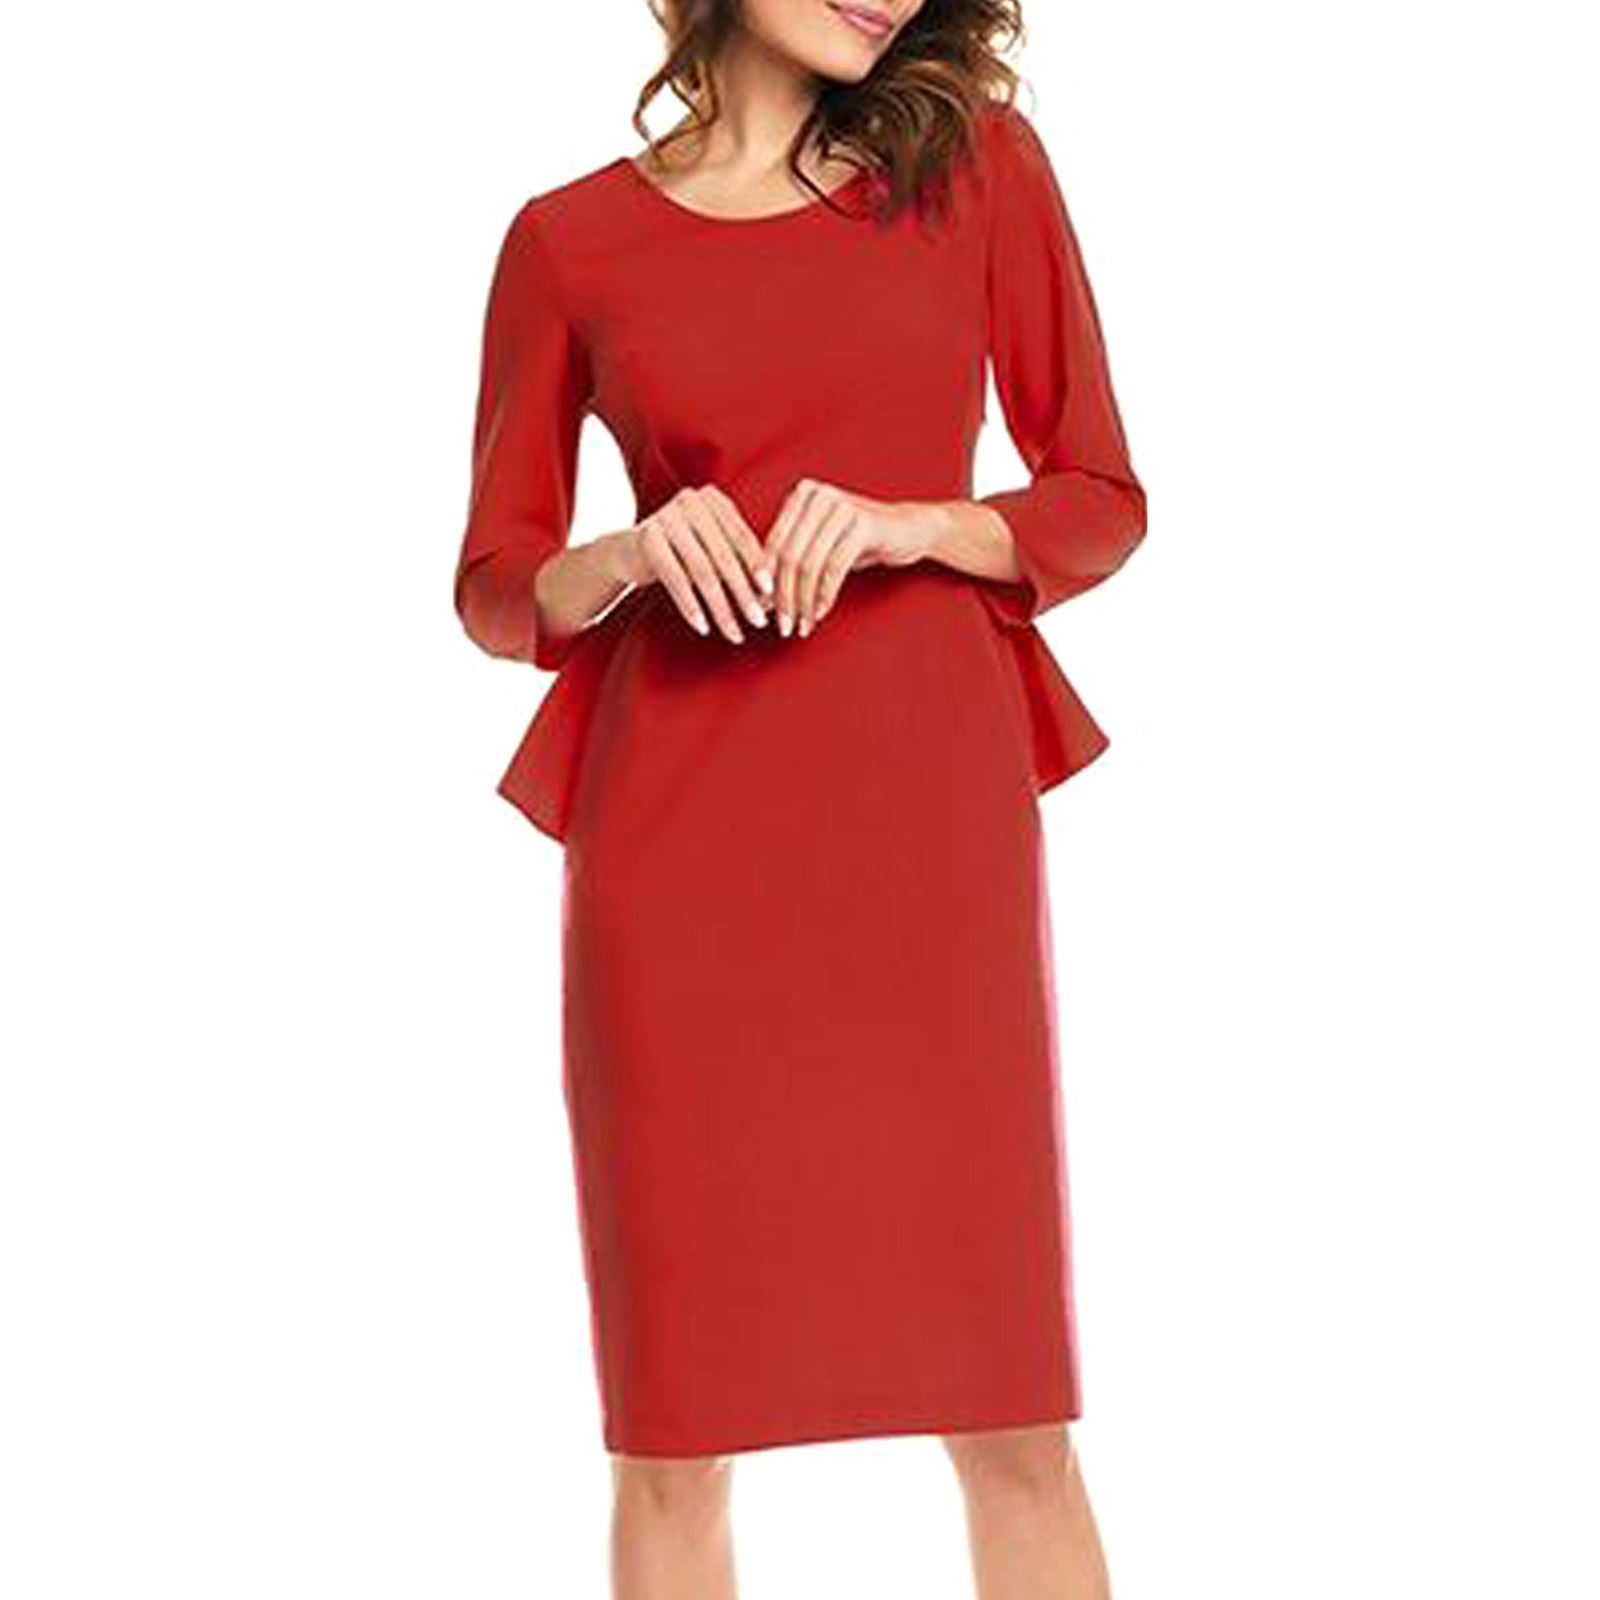 368f7bed5440a Awama Robe à basque - rouge   BrandAlley